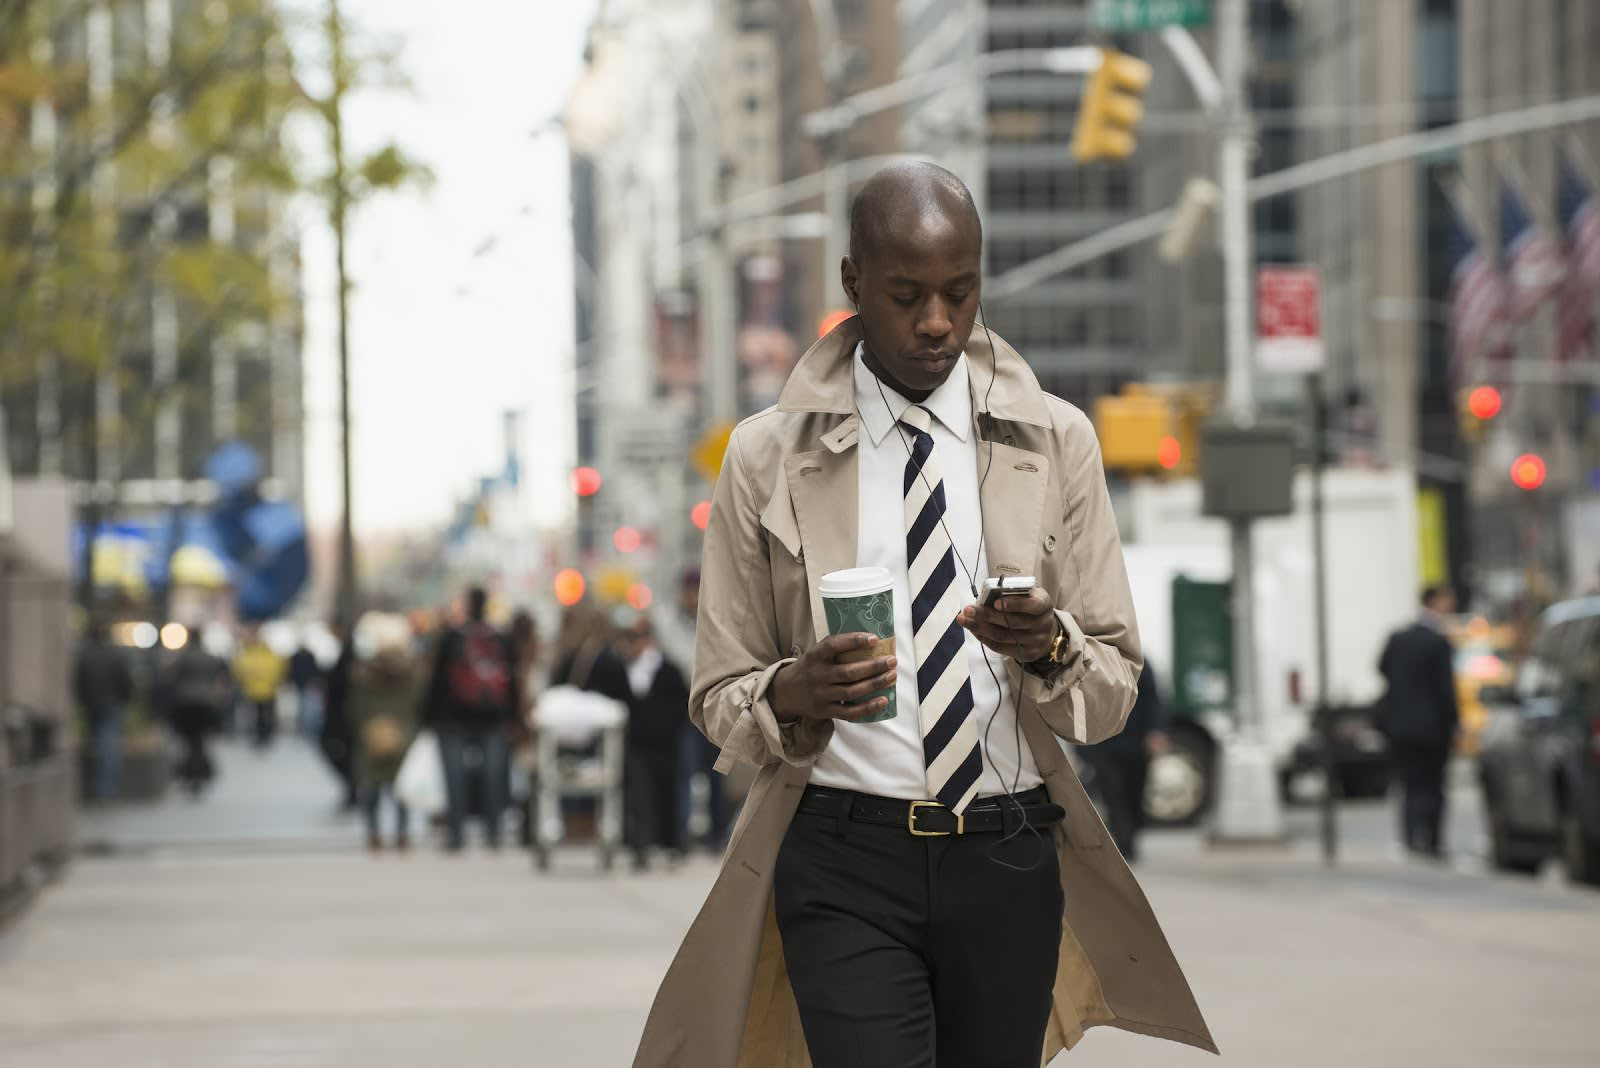 [Businessman using cell phone on city street]